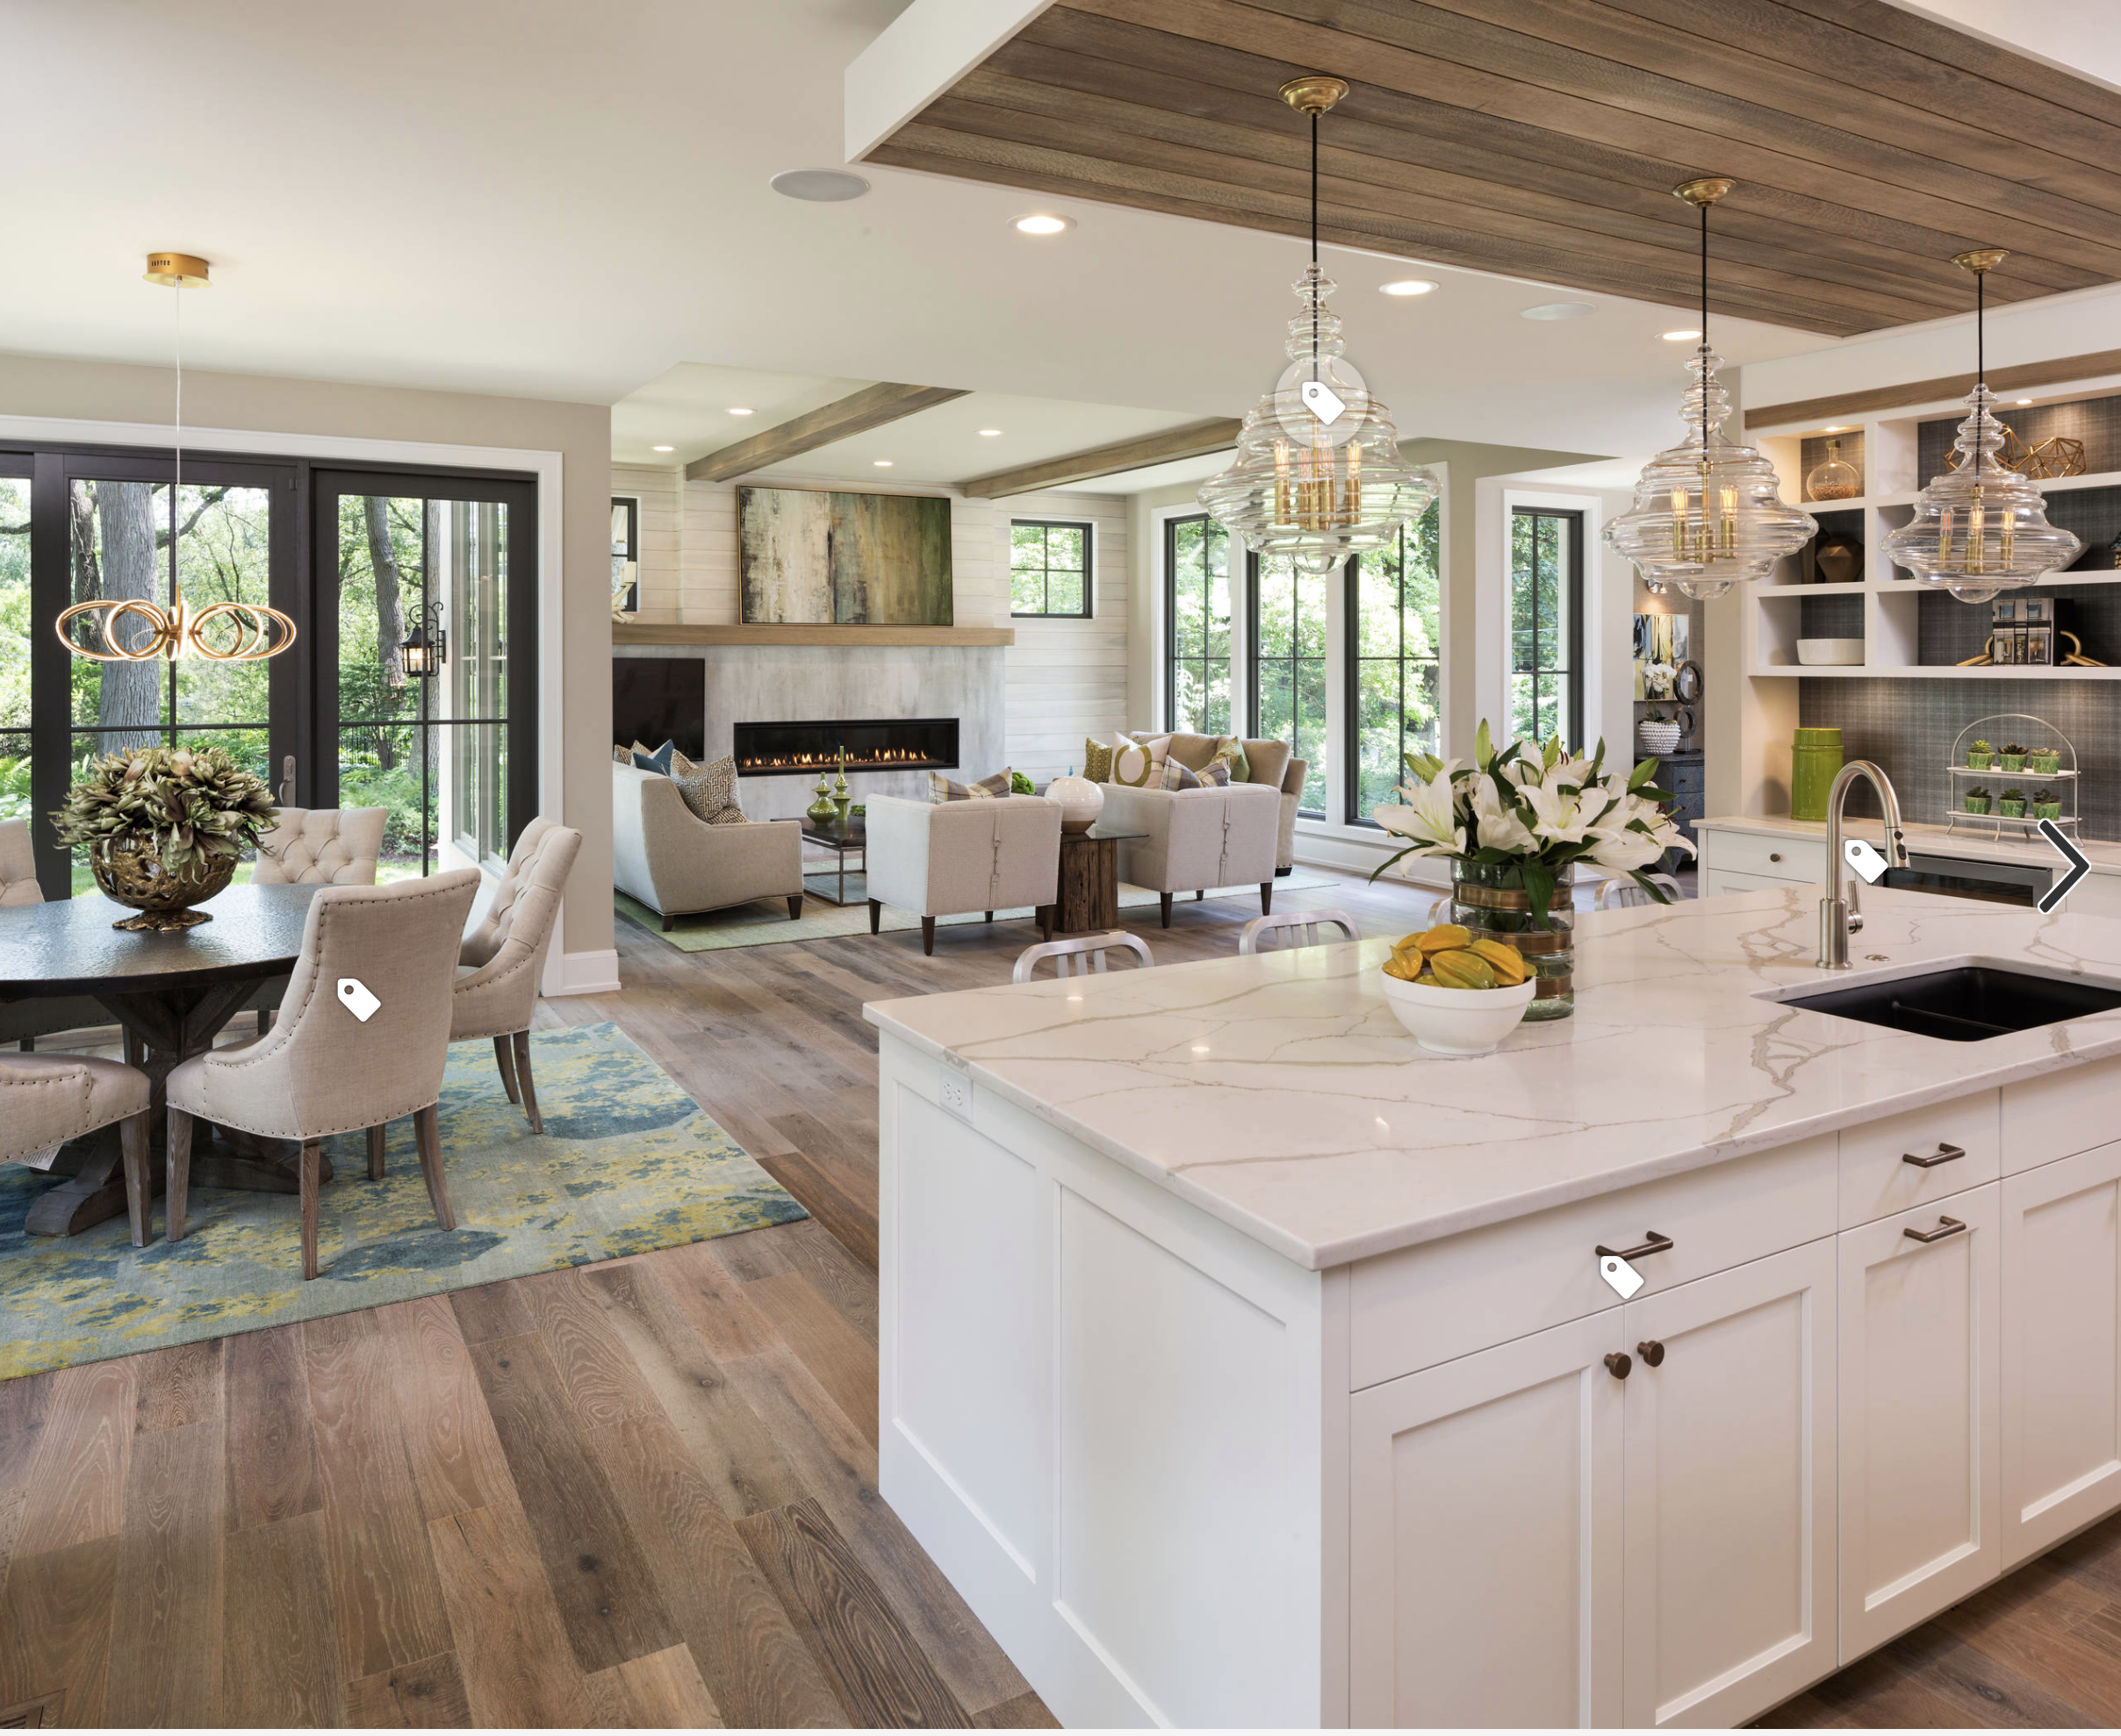 Transitional Kitchen With Open Floor Plan Open Plan Kitchen Living Room Open Concept Kitchen Living Room Kitchen Concepts